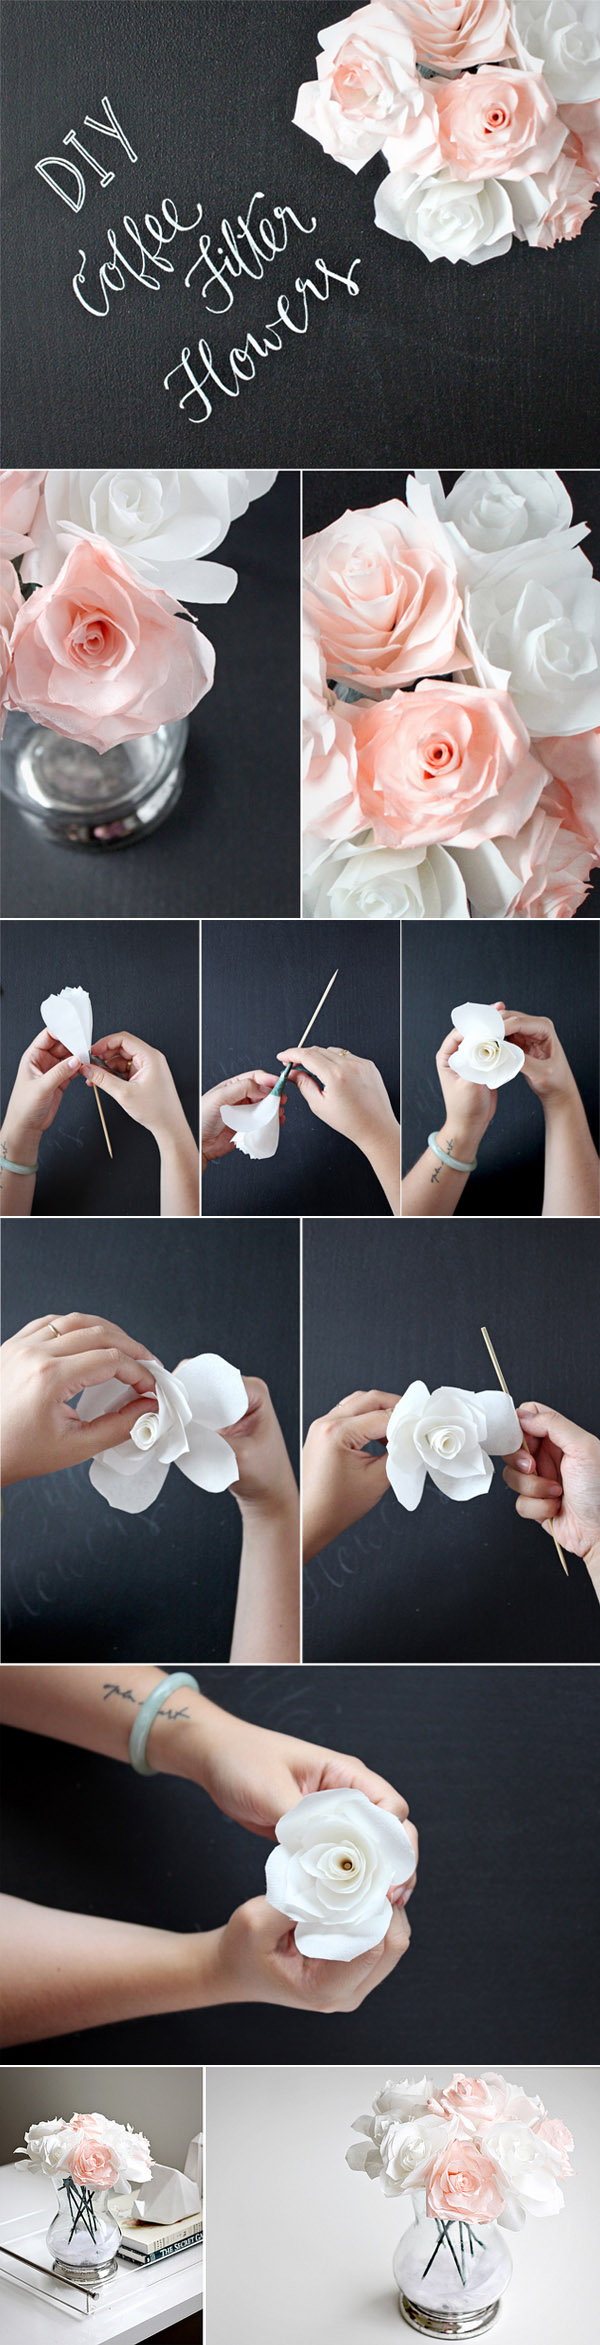 10 creative diy wedding centerpieces with tutorials diy wedding centerpieces ideas with coffee filter flowers izmirmasajfo Choice Image